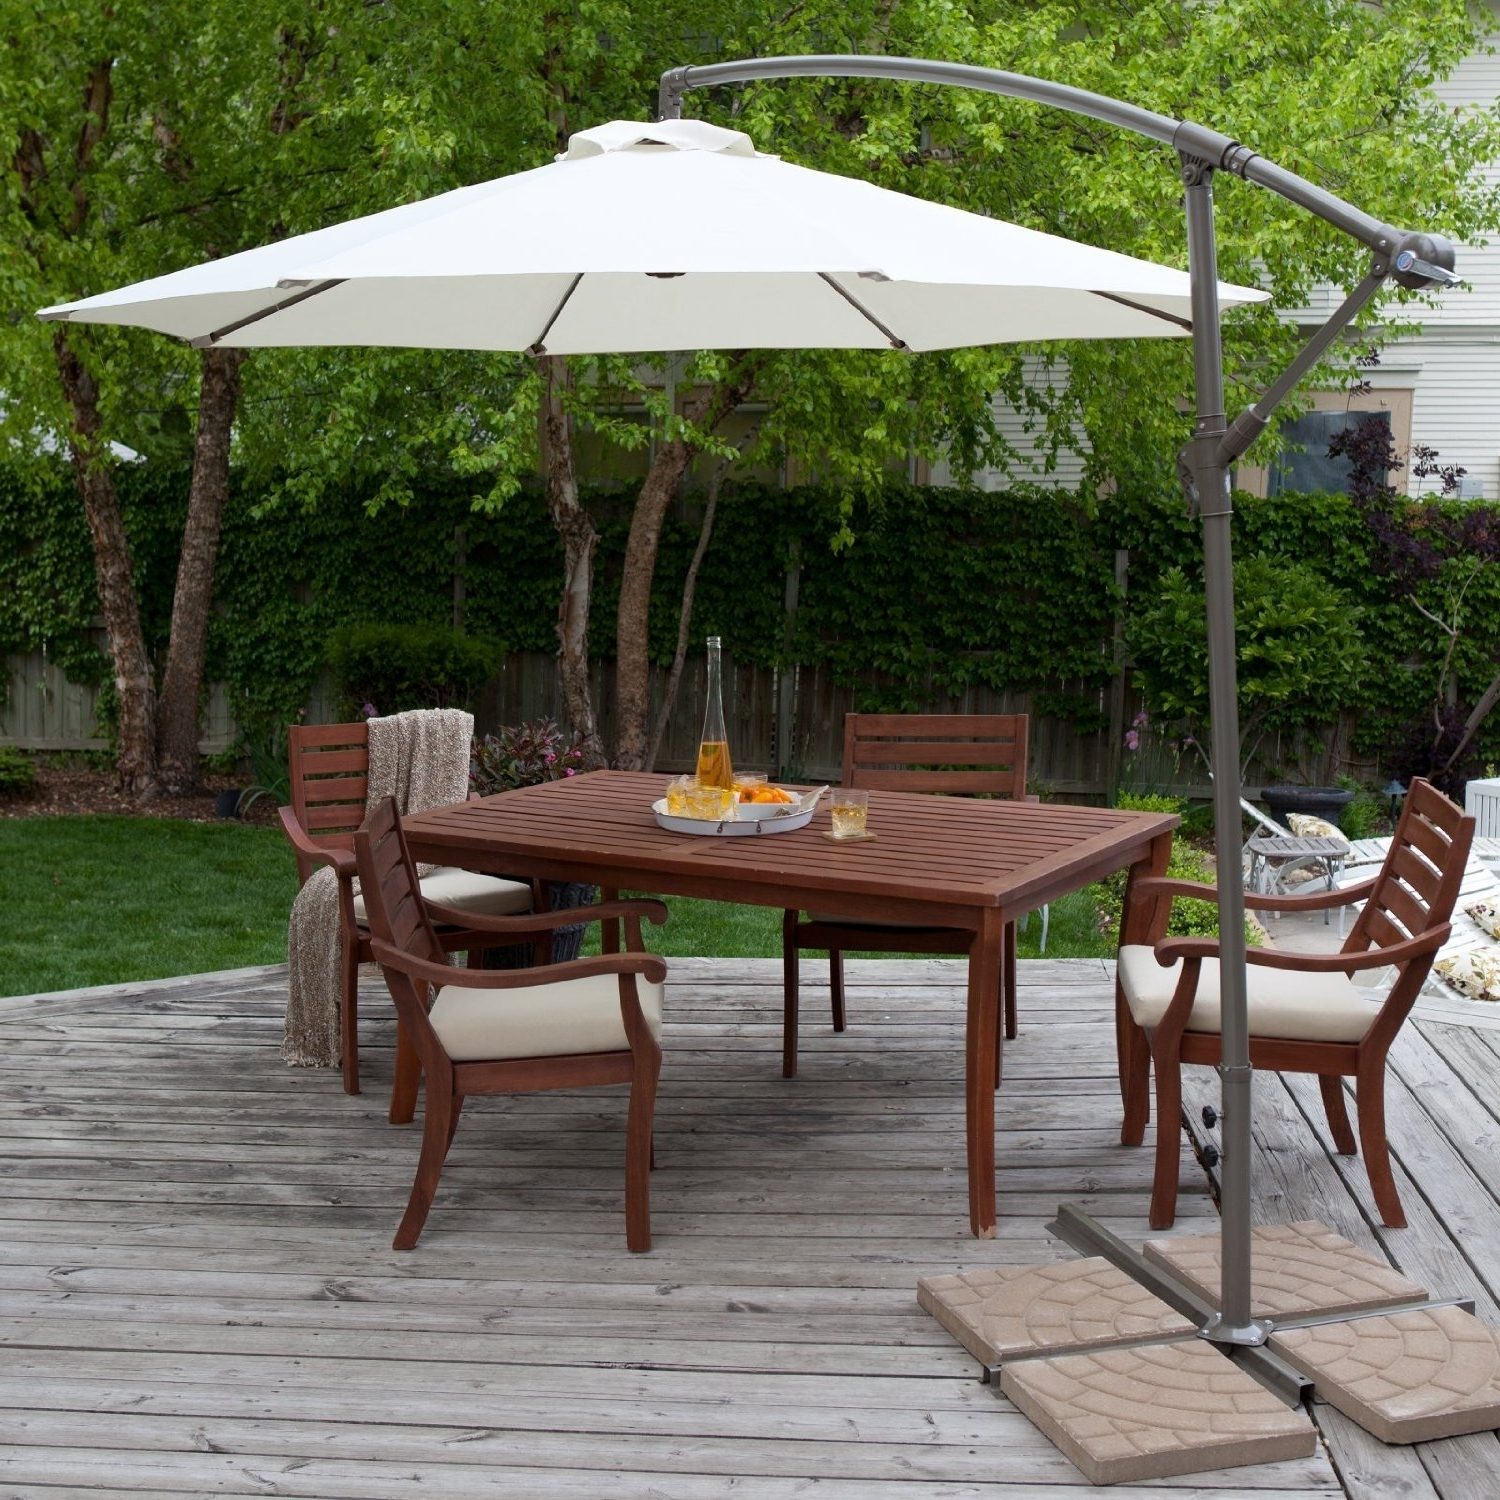 Recent Patio Umbrellas With Table With Round White Fabric Patio Umbrella With Black Base Over Dark Brown (View 16 of 20)